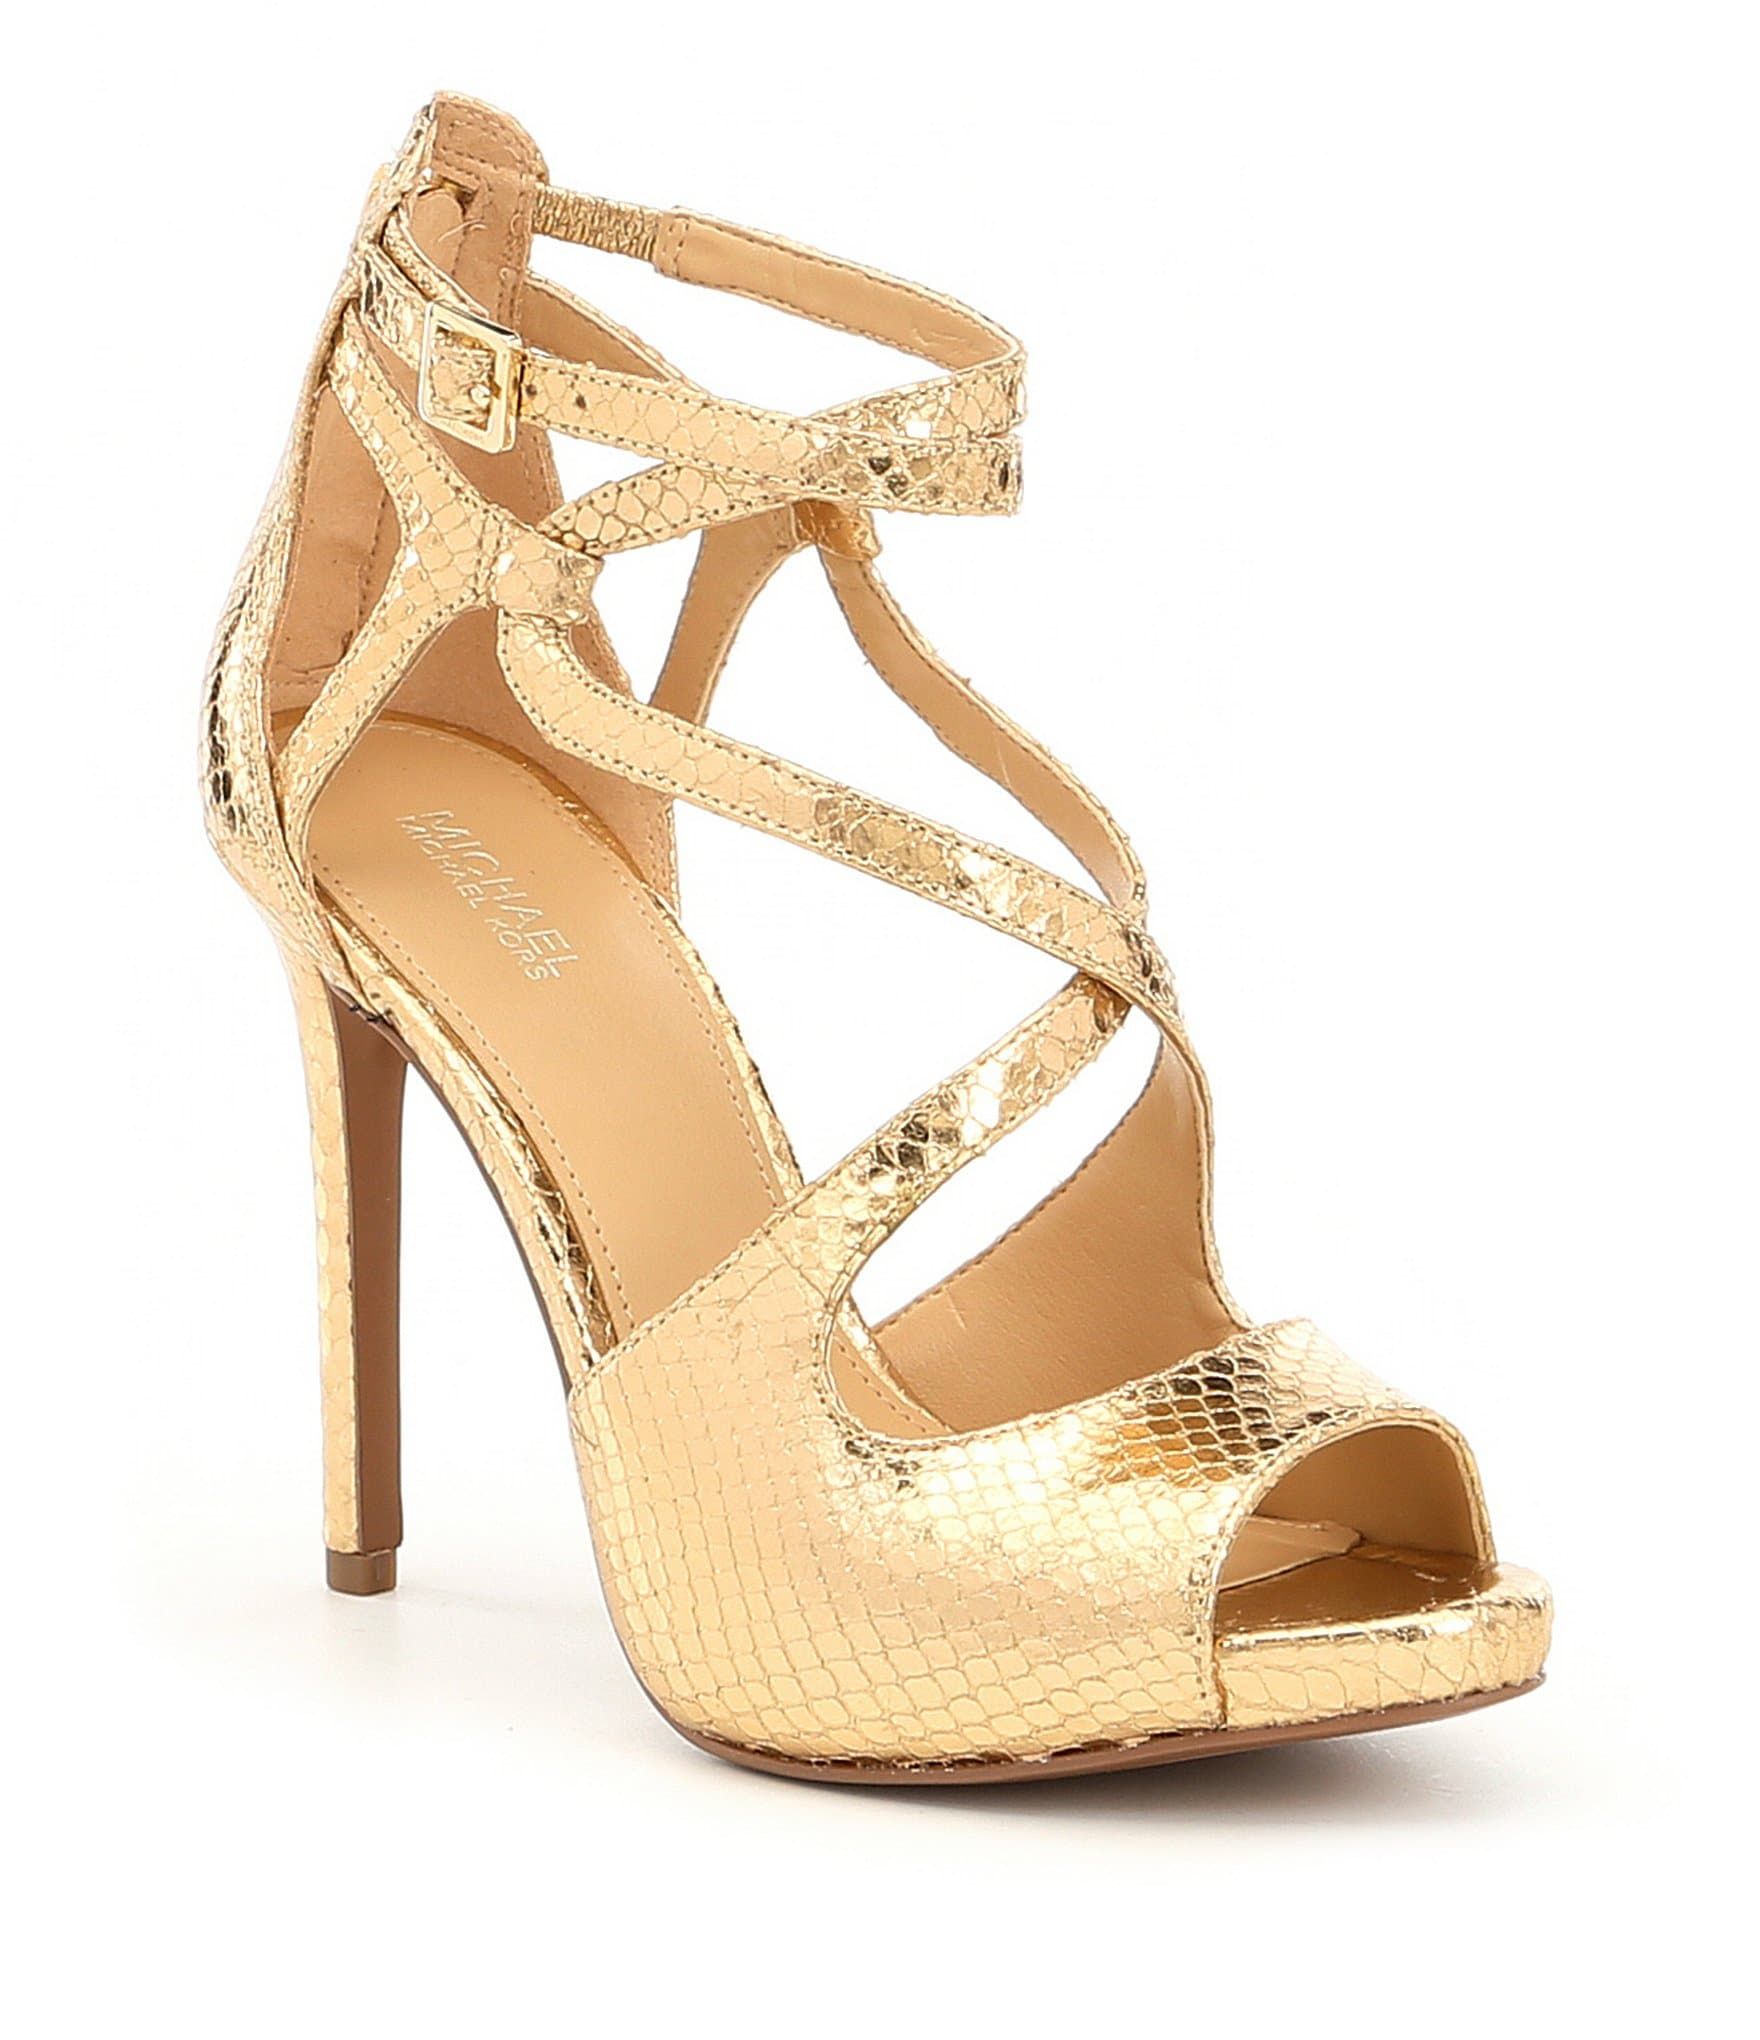 MICHAEL Michael Kors Catia Metallic Snake Dress Sandals | Dillards